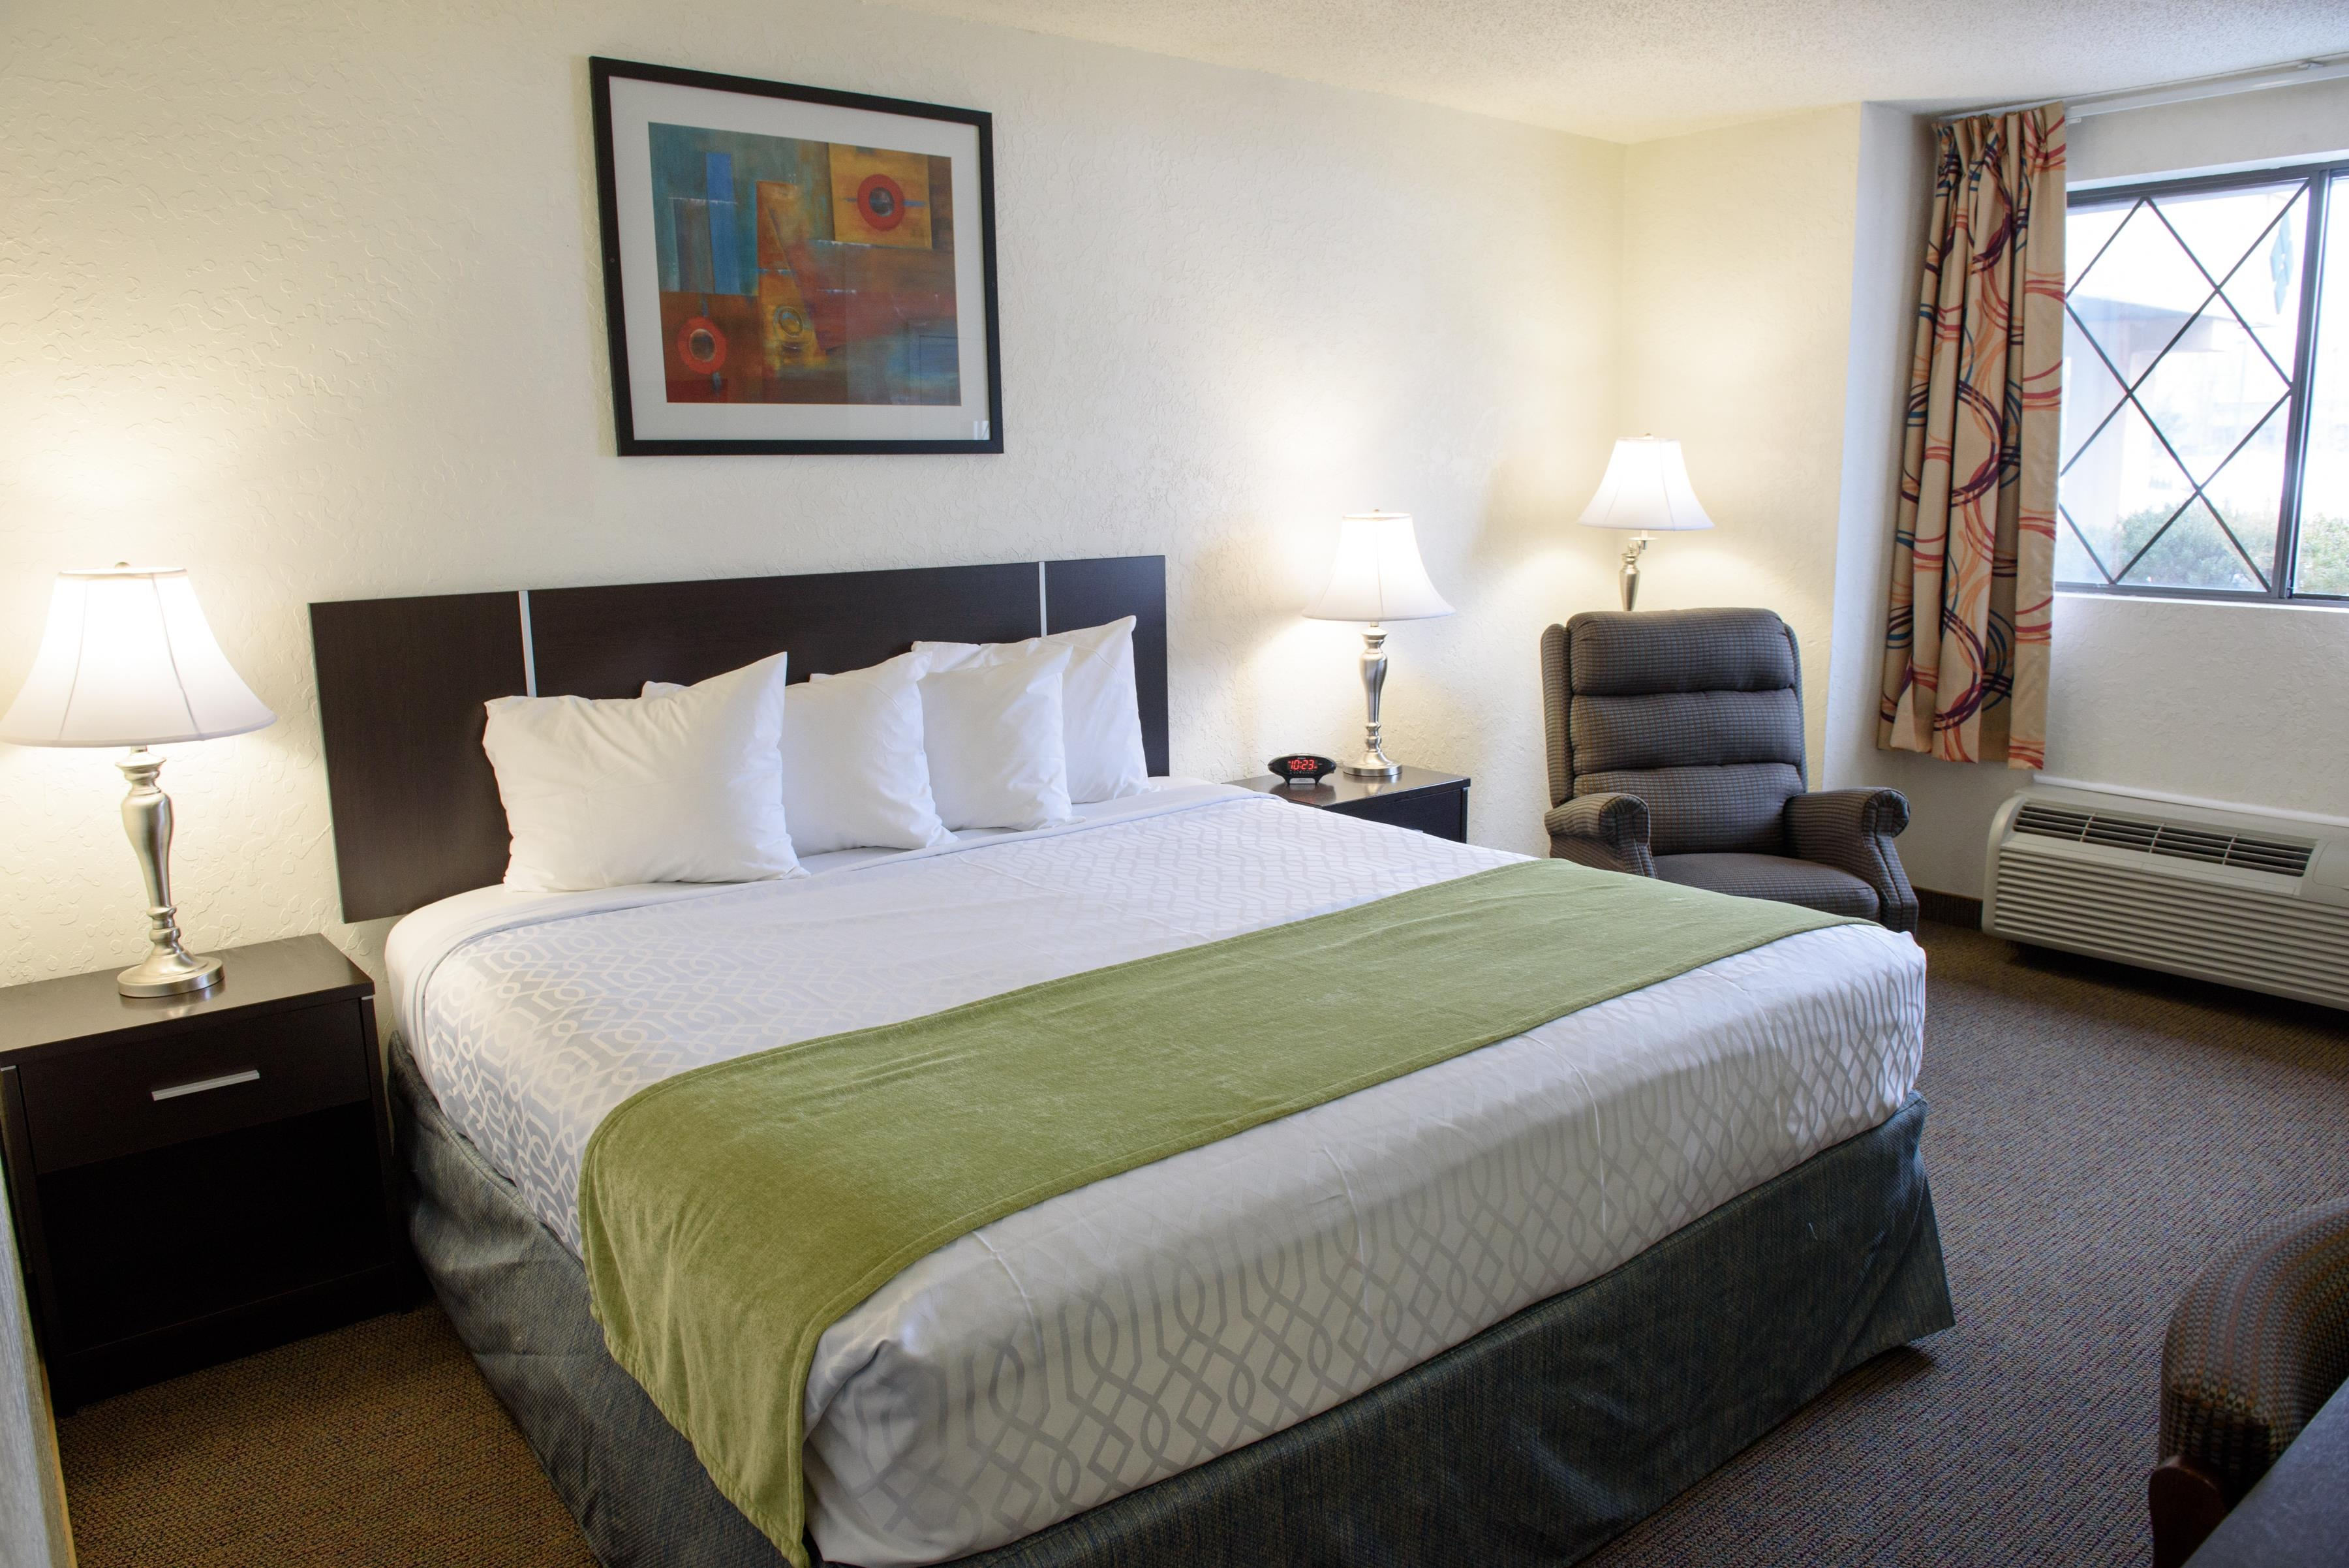 Americas Best Value Inn - New Paltz image 6